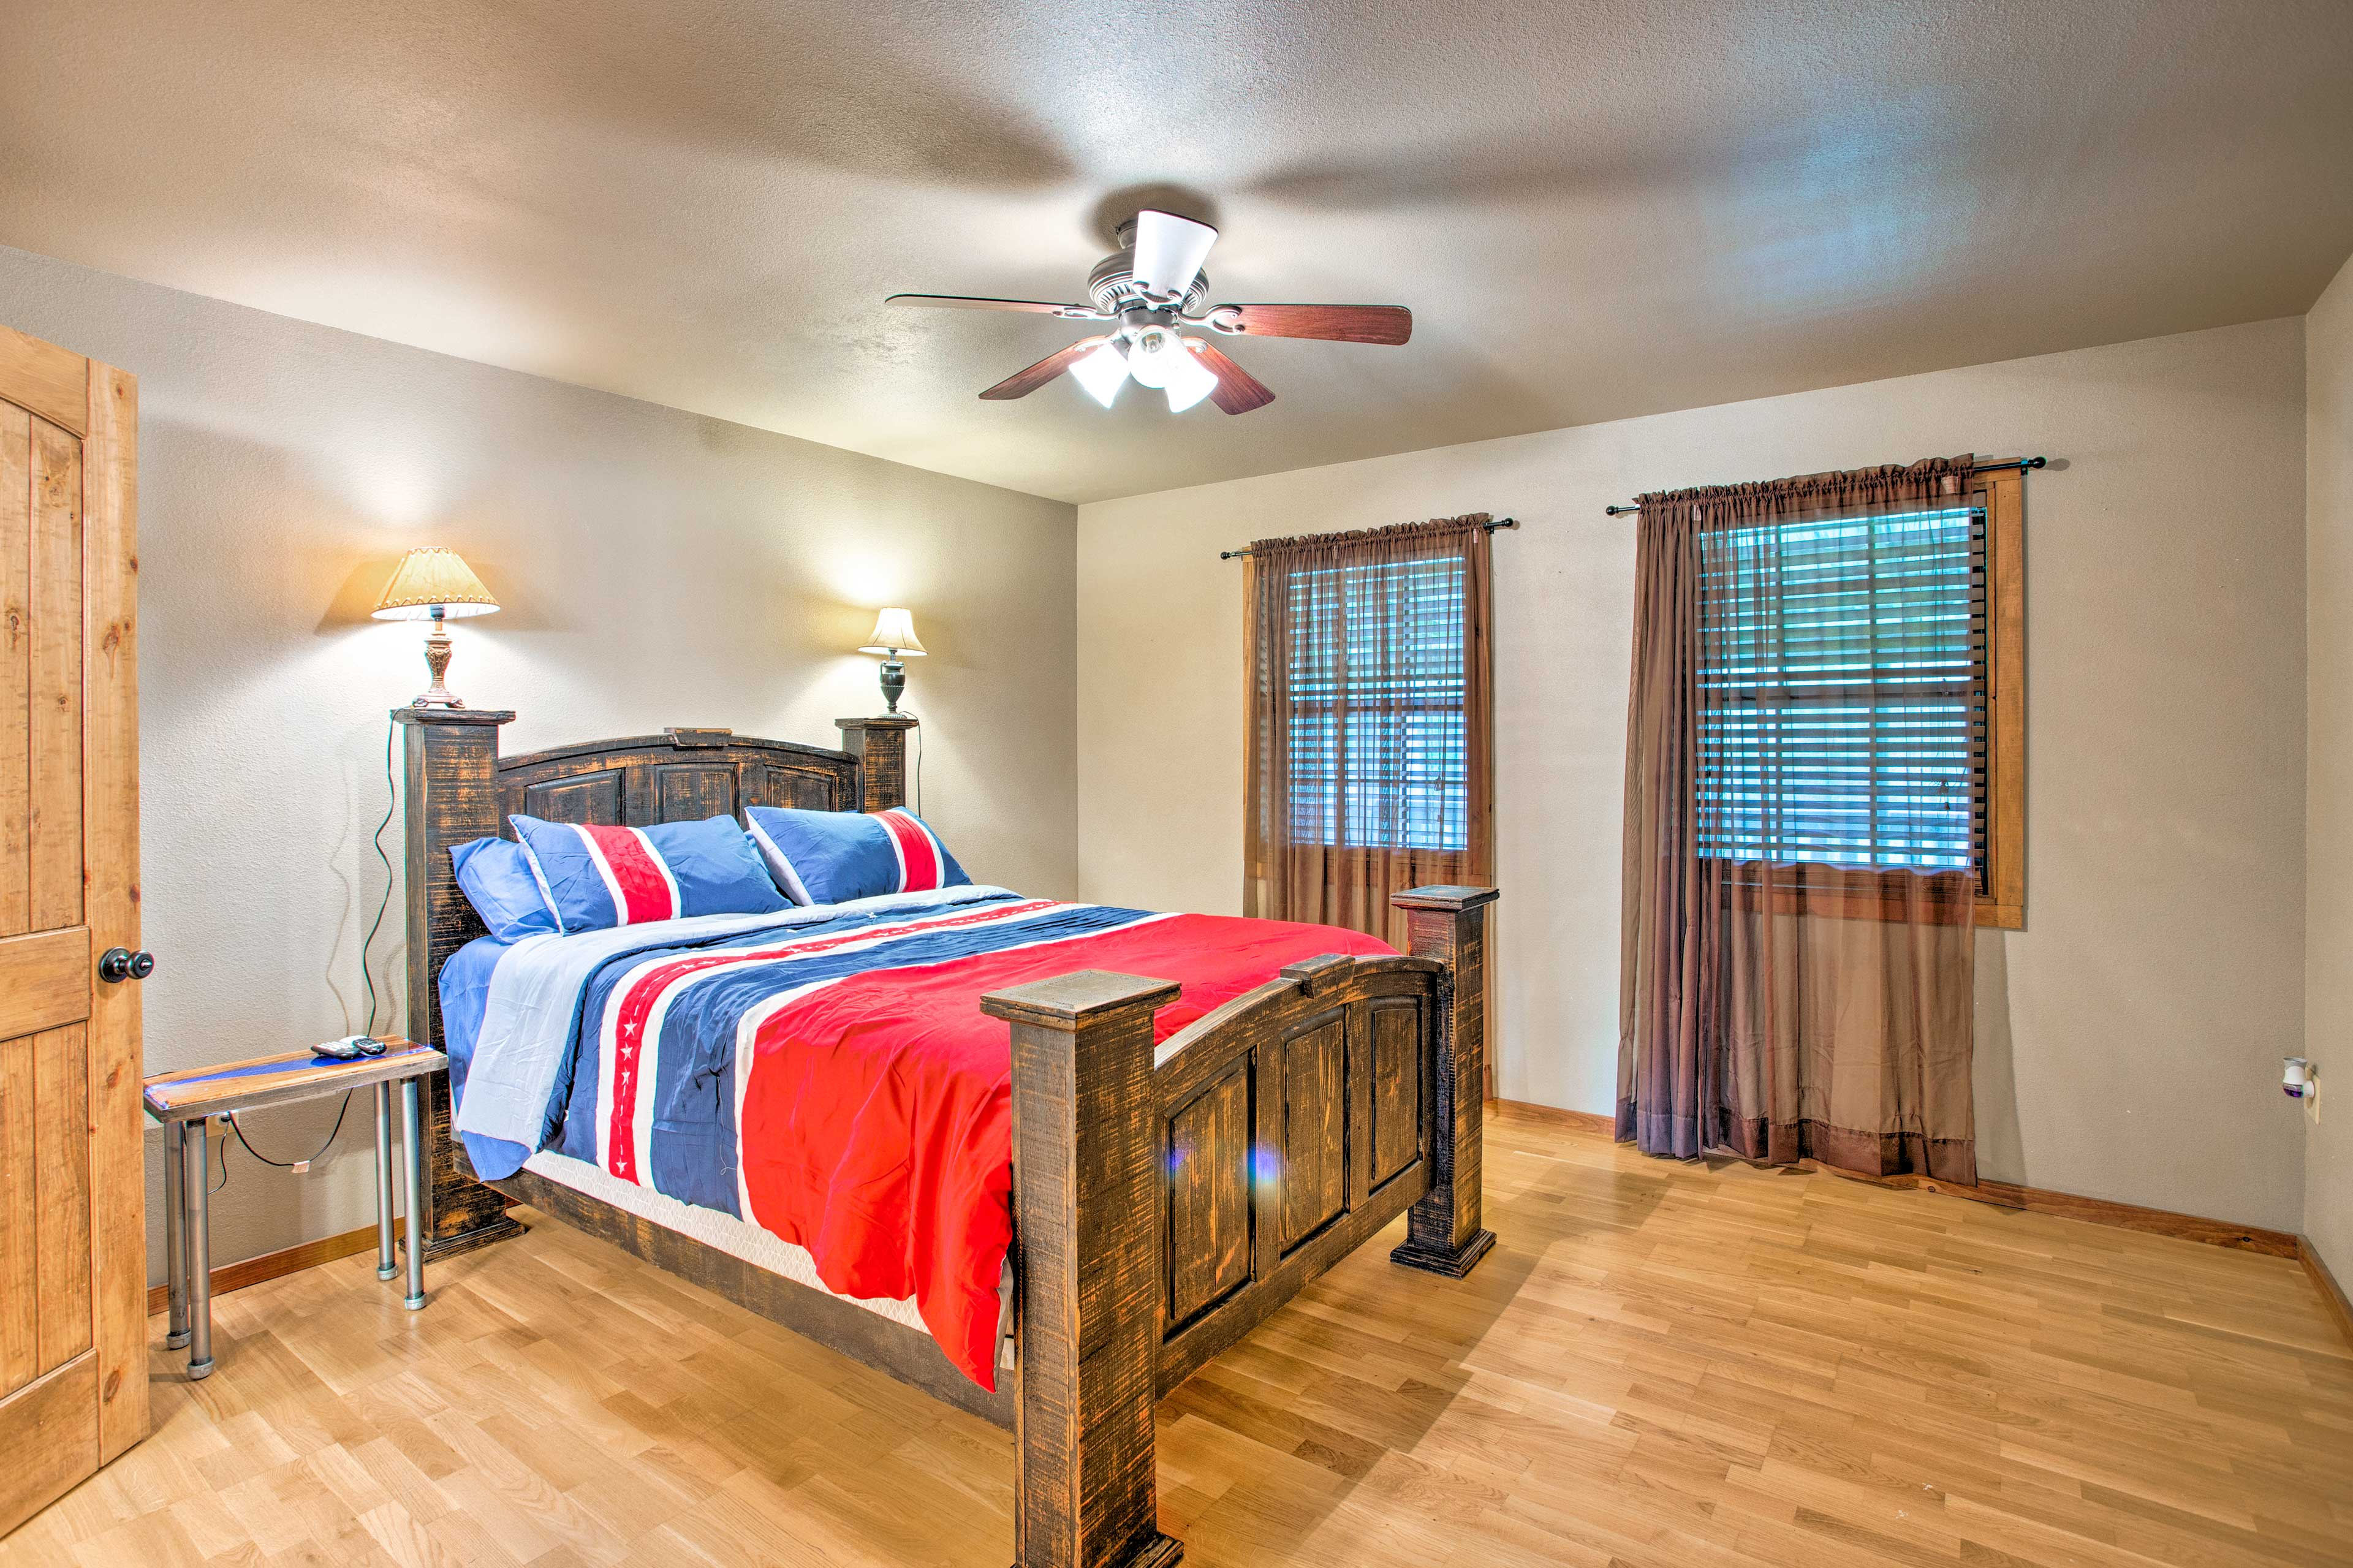 Sleep up to 2 guests in this spacious master bedroom with a queen bed.